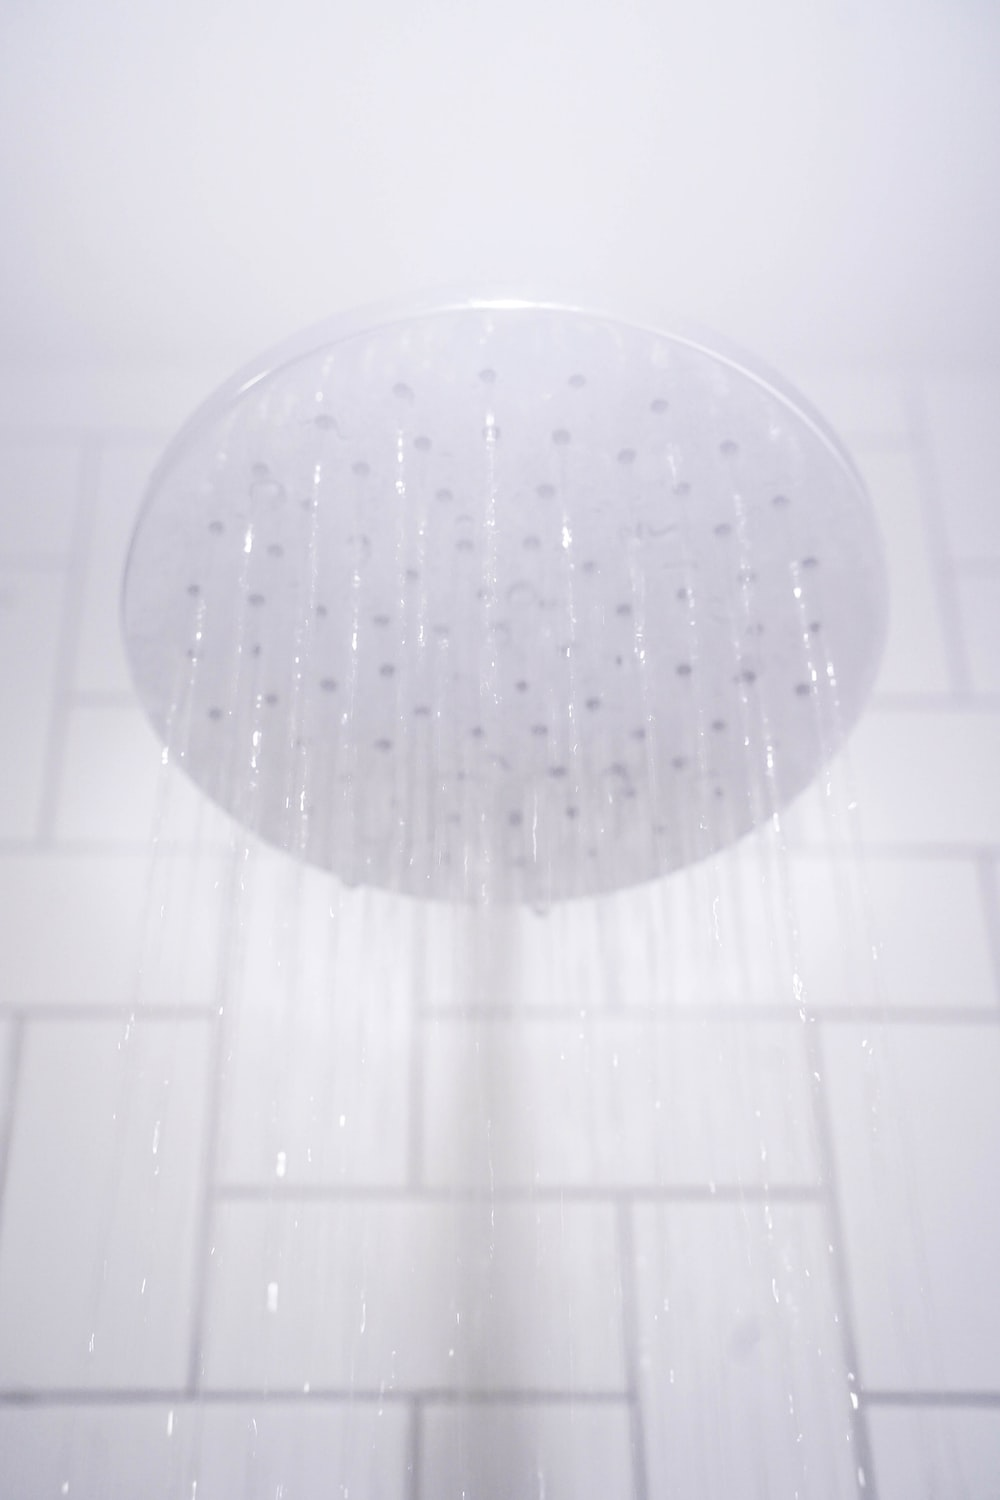 water from round gray stainless steel shower head